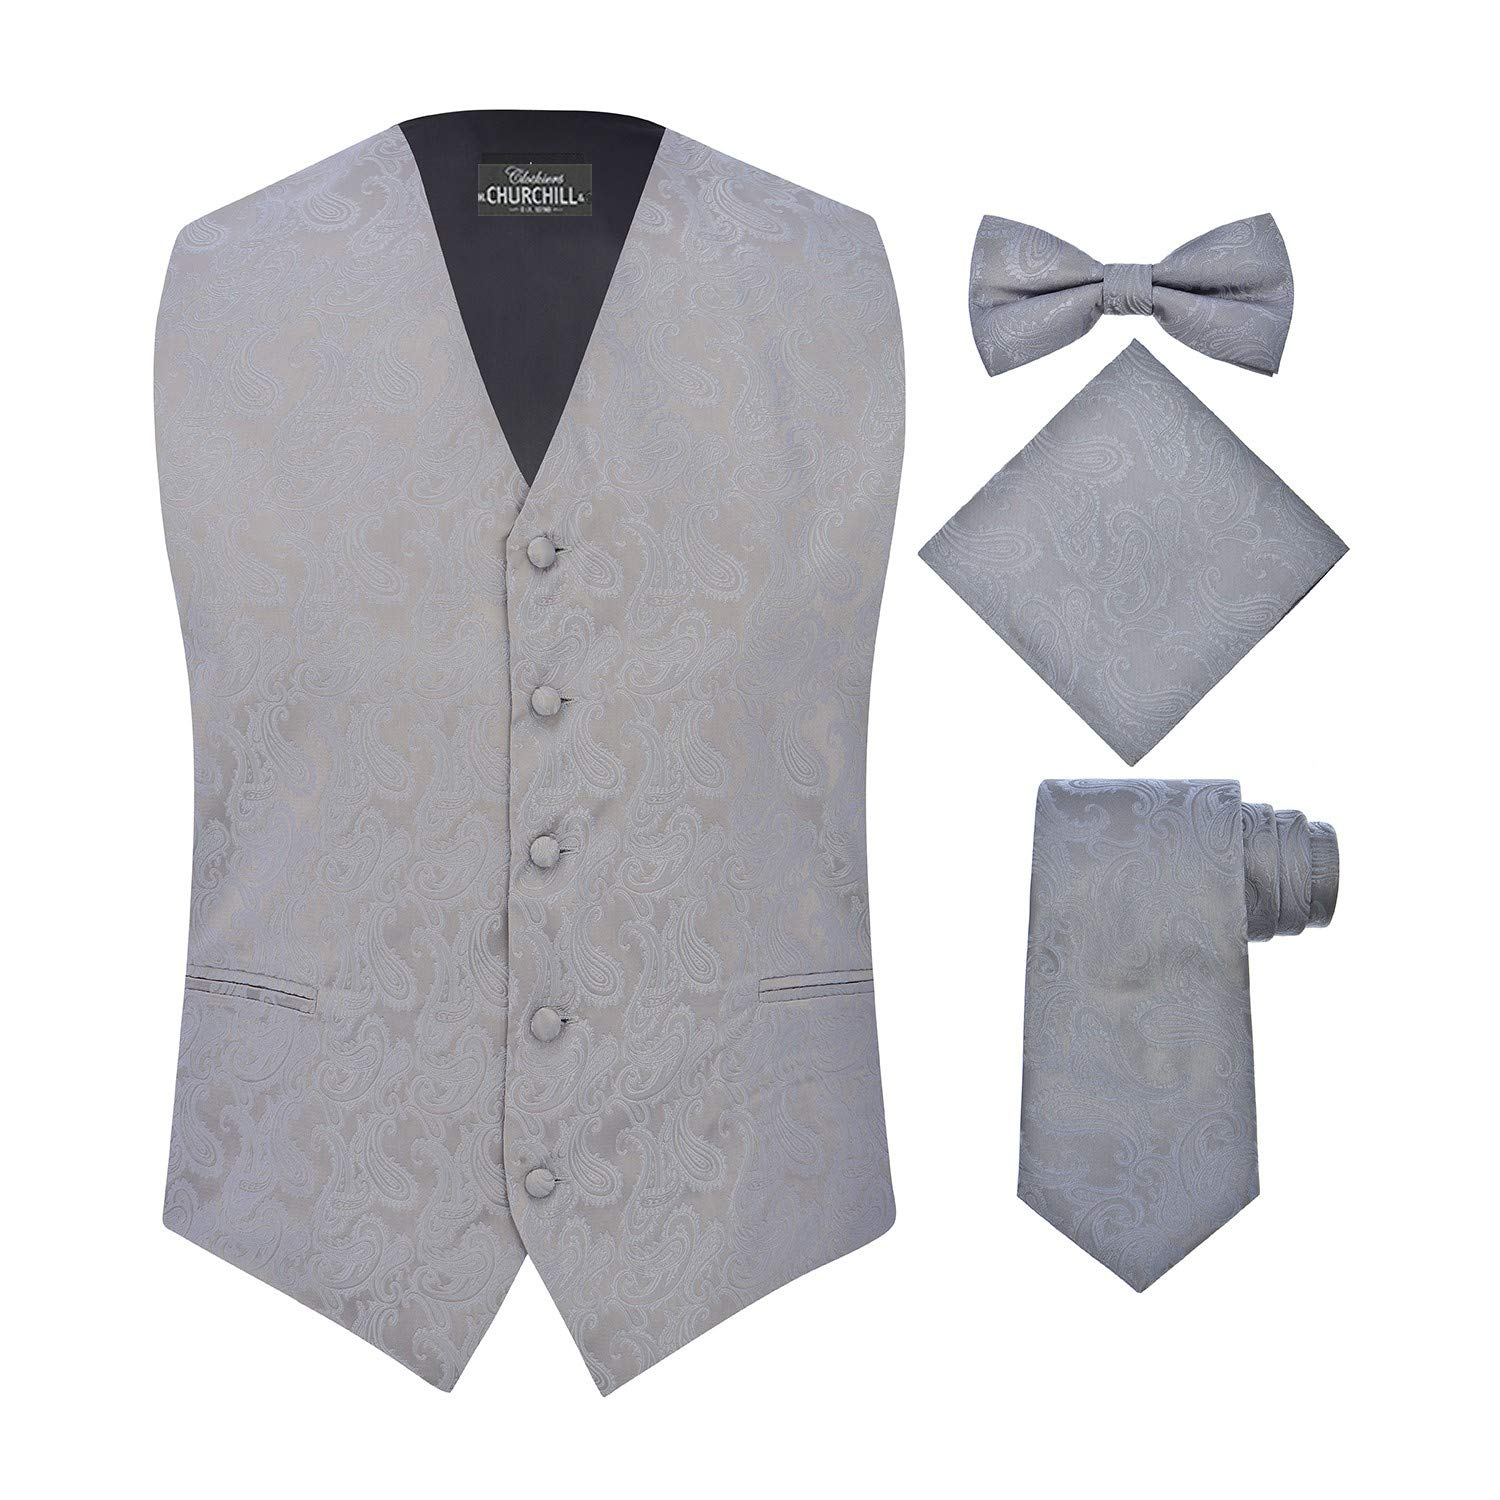 S.H. Churchill & Co. Men's 4 Piece Paisley Vest Set, with Bow Tie, Neck Tie & Pocket Hanky - (L, Silver)